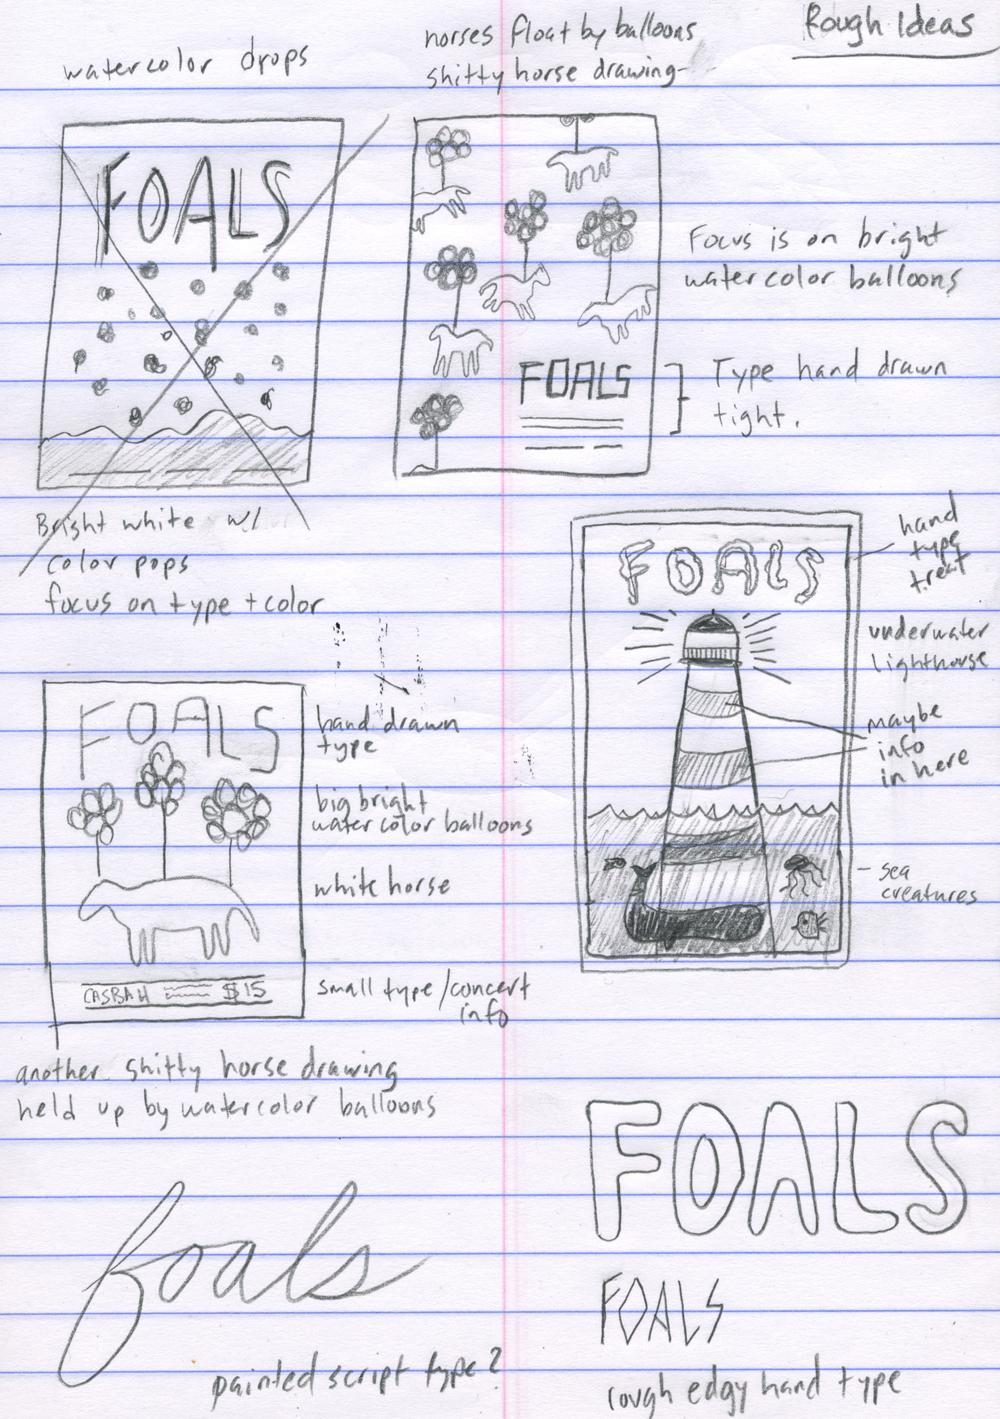 FOALS - HOLY FIRE - image 2 - student project